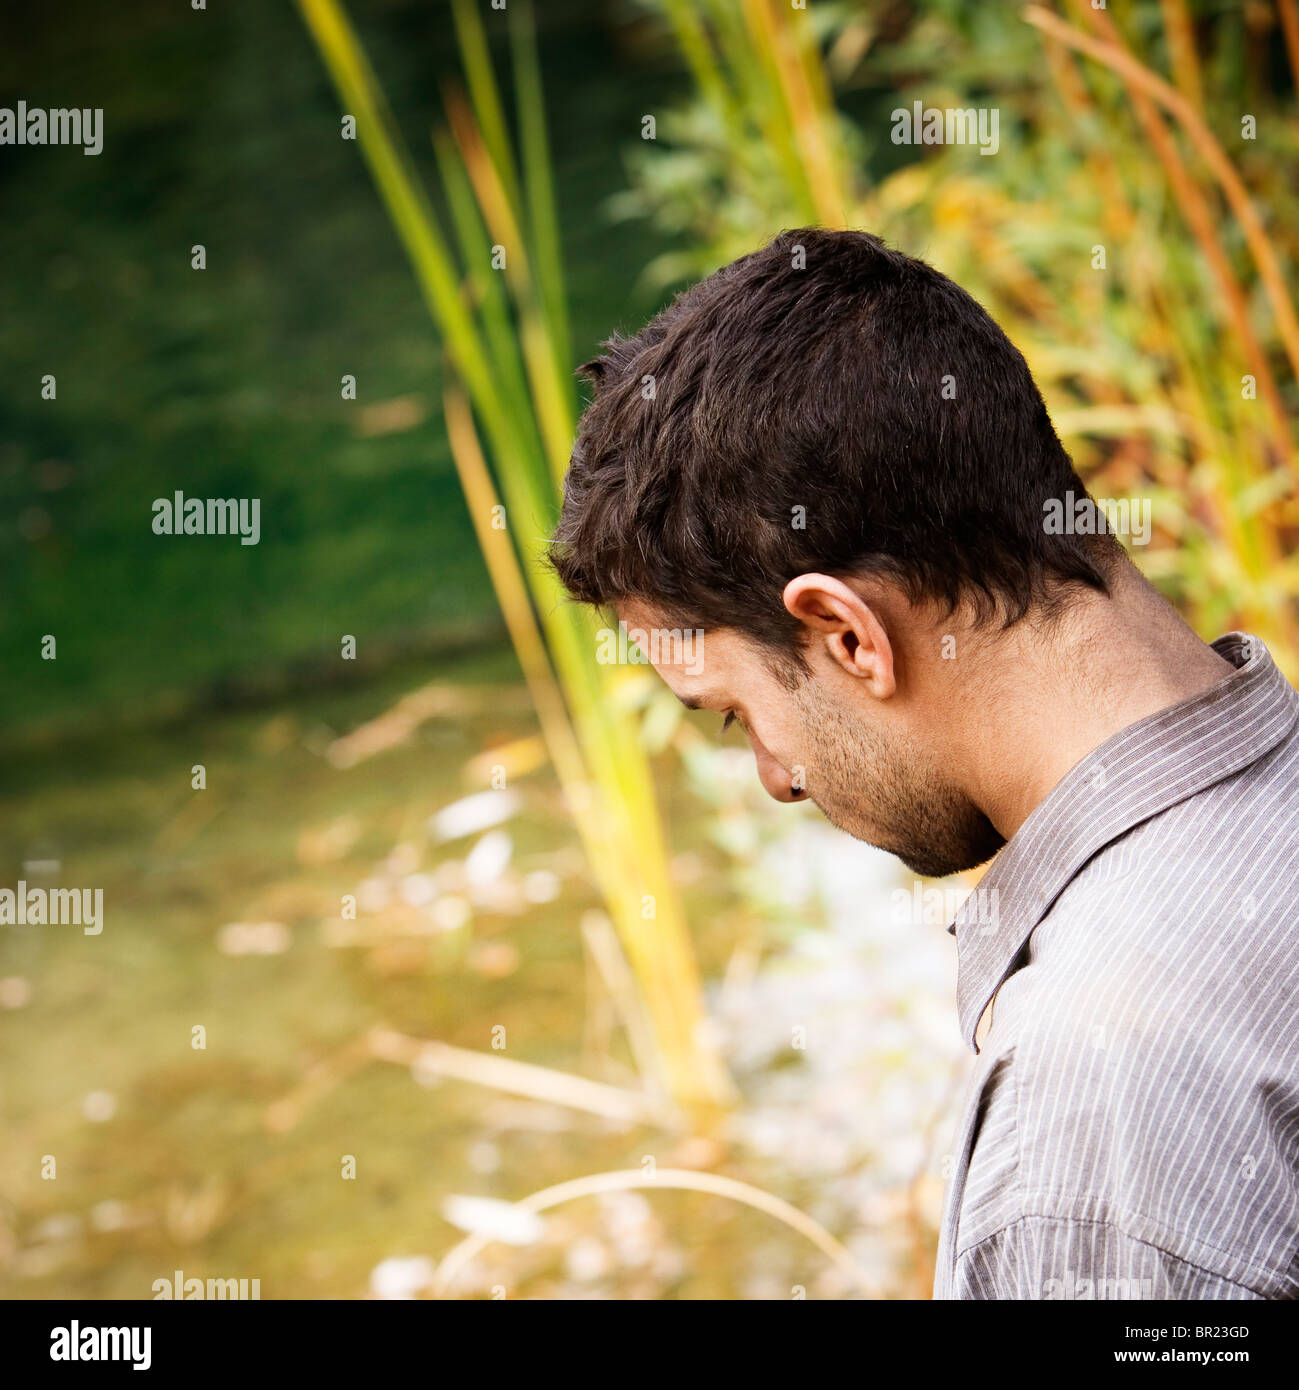 Side view of a man looking down. - Stock Image